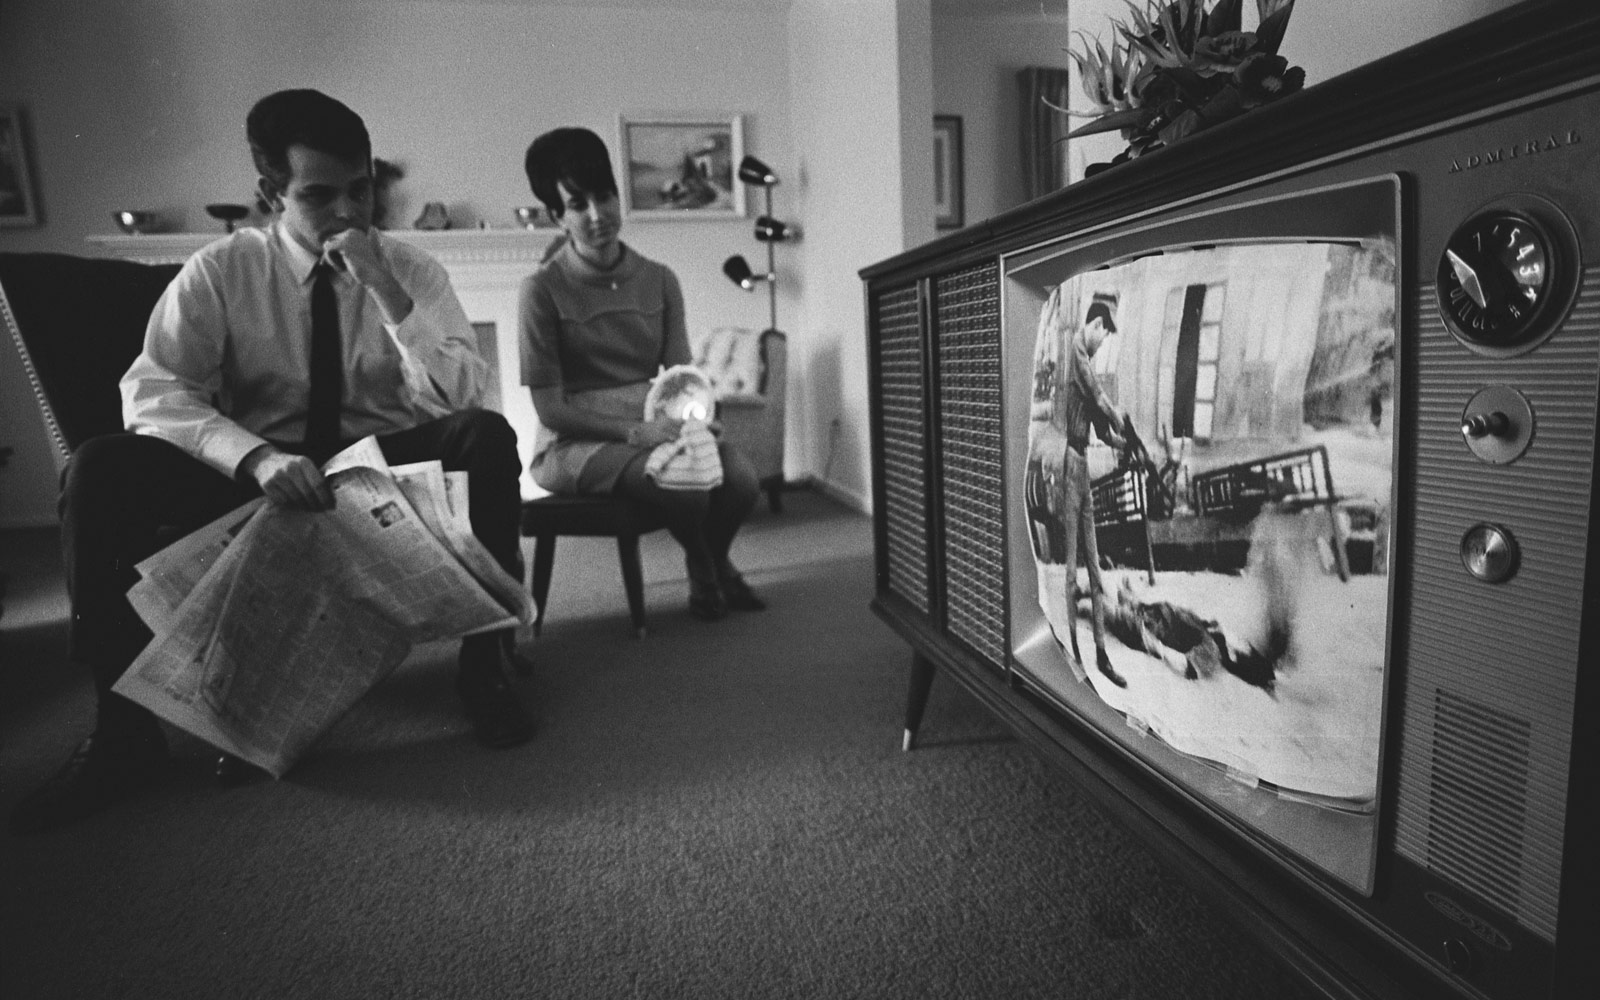 A man and a woman watching a film footage of the Vietnam war on a television, 1968